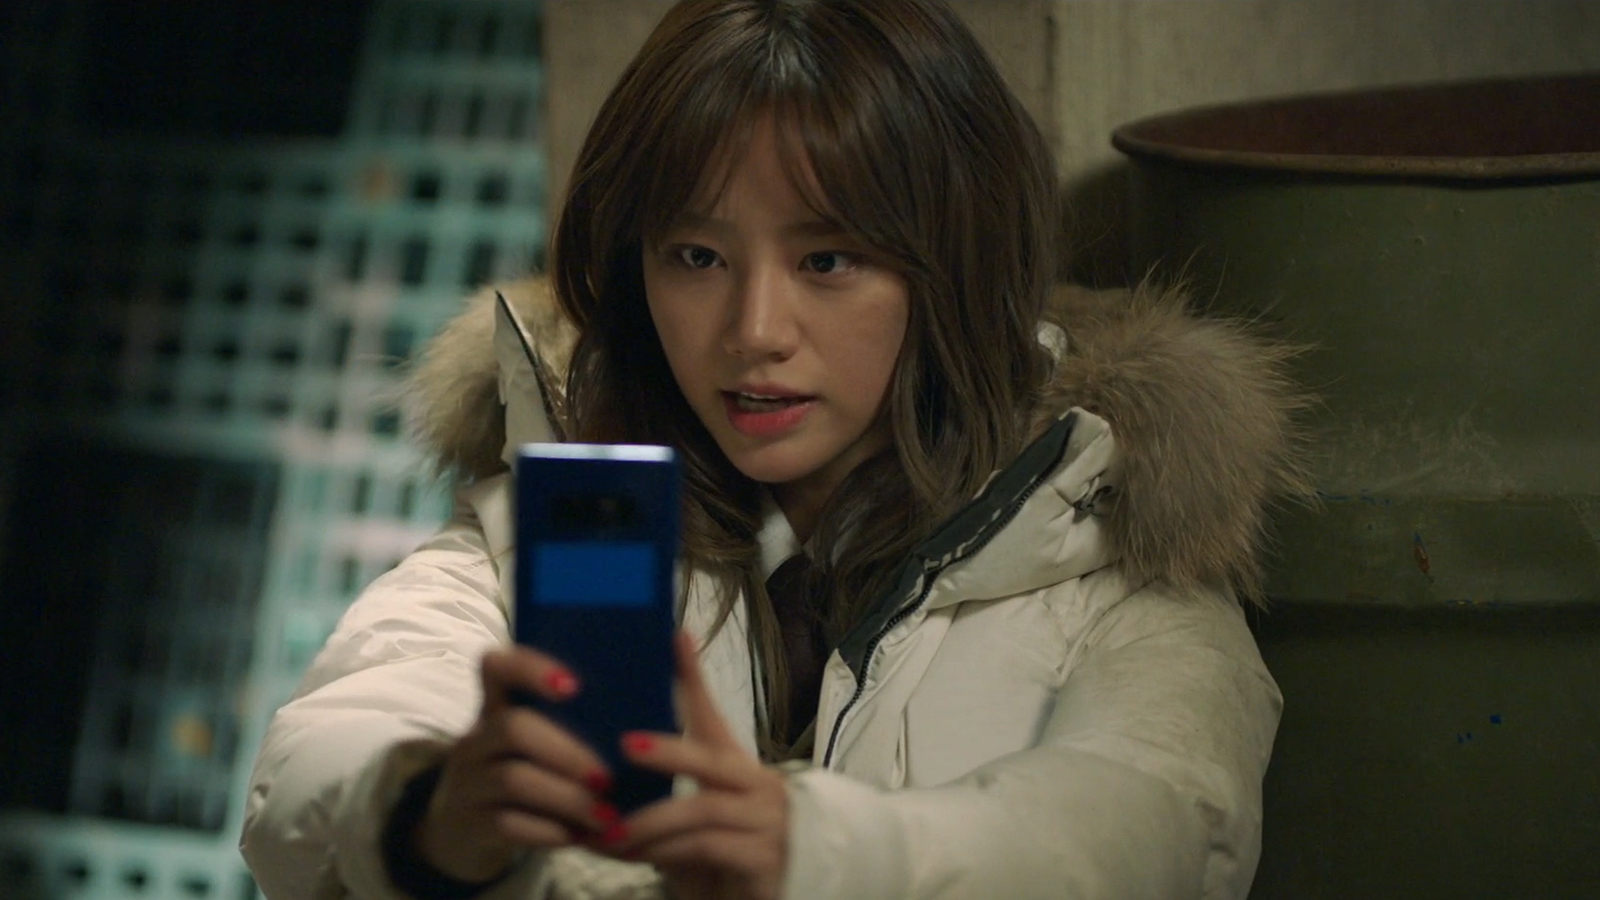 Two Cops Episode 11